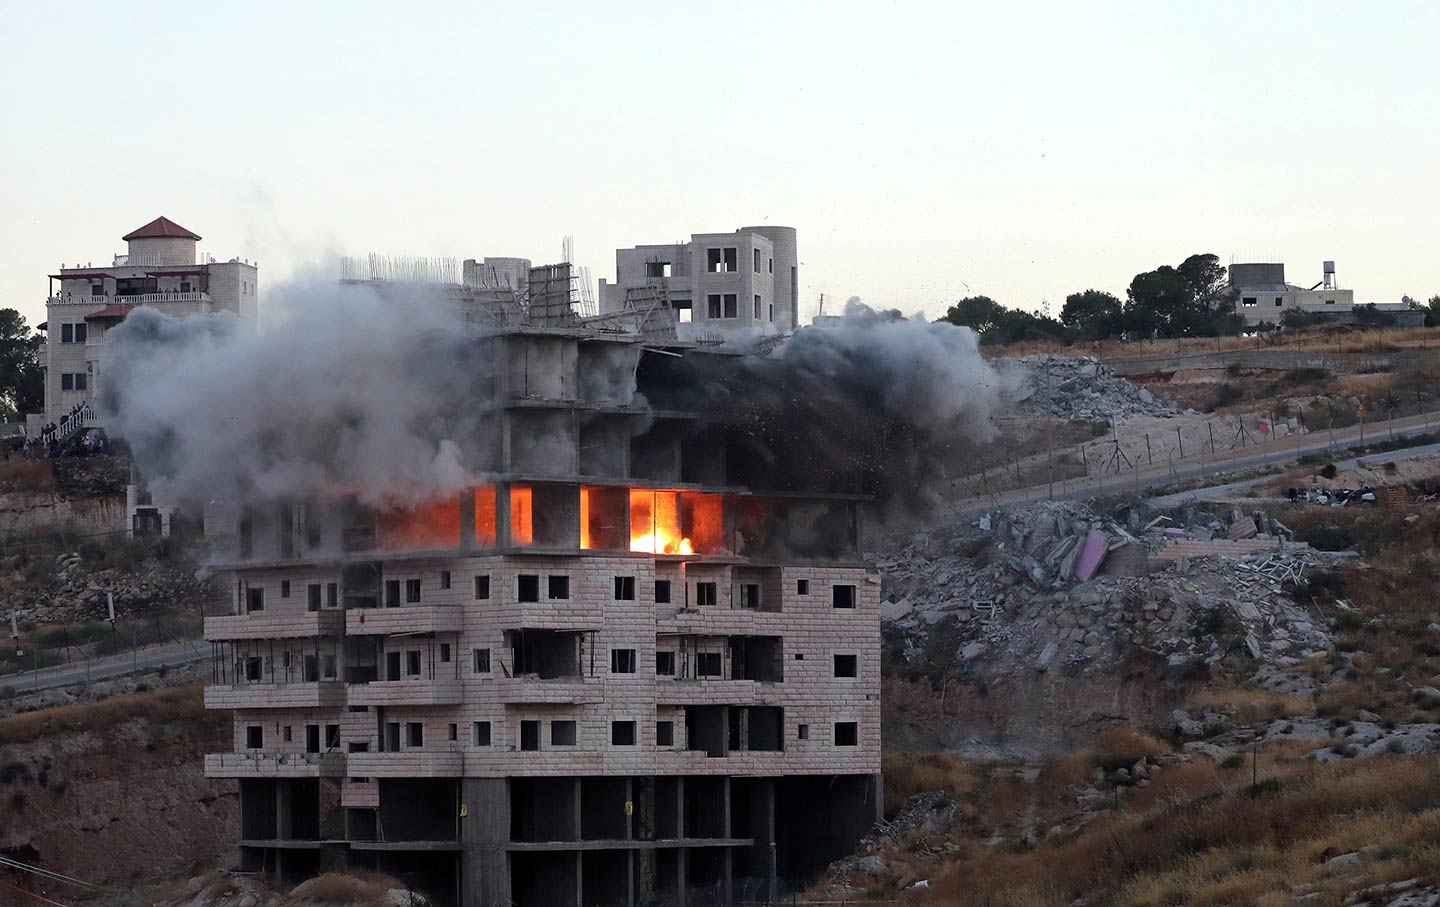 Image: Israeli forces blow up a Palestinian building in the village of Sur Baher on July 22. (Reuters / Ammar Awad)